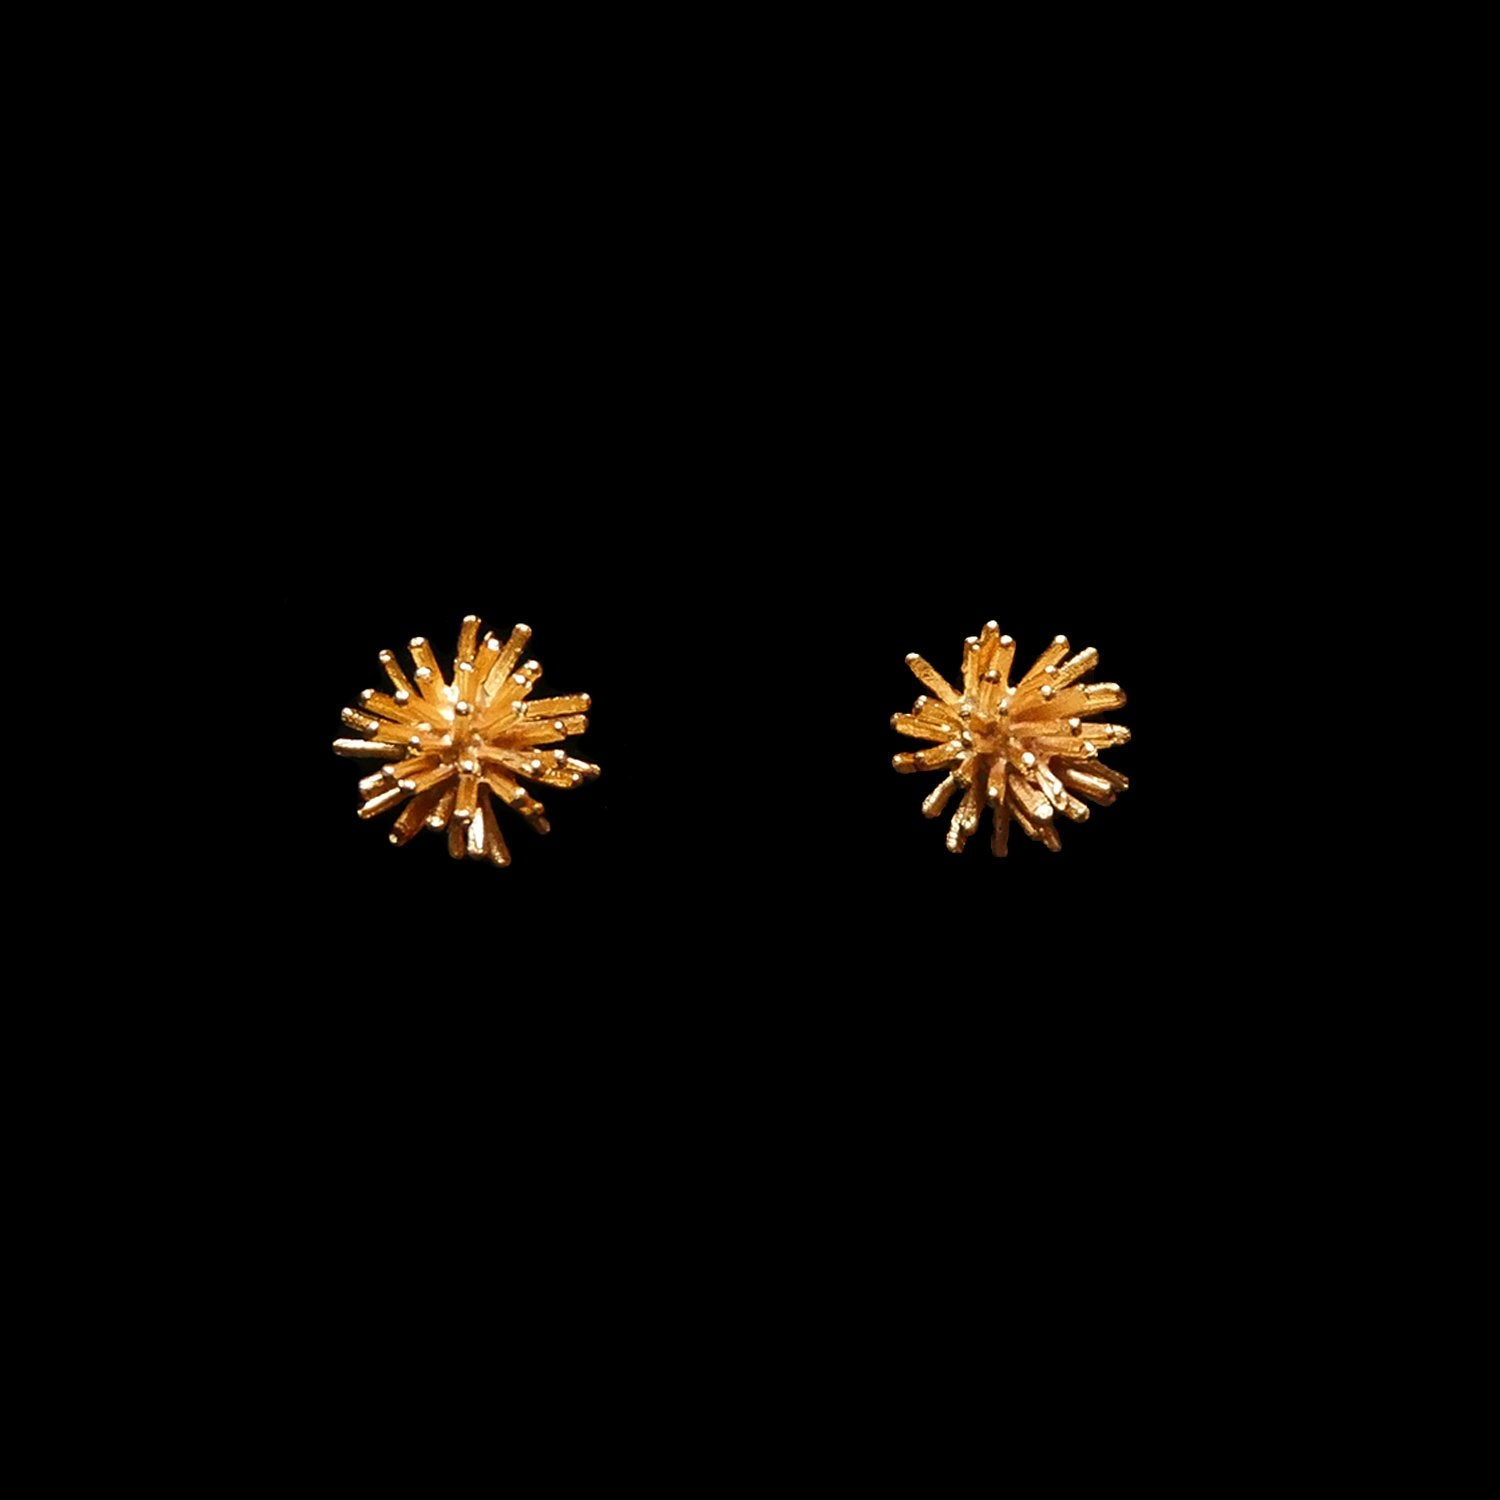 Gone To Seed Earrings - Large Stud Gold